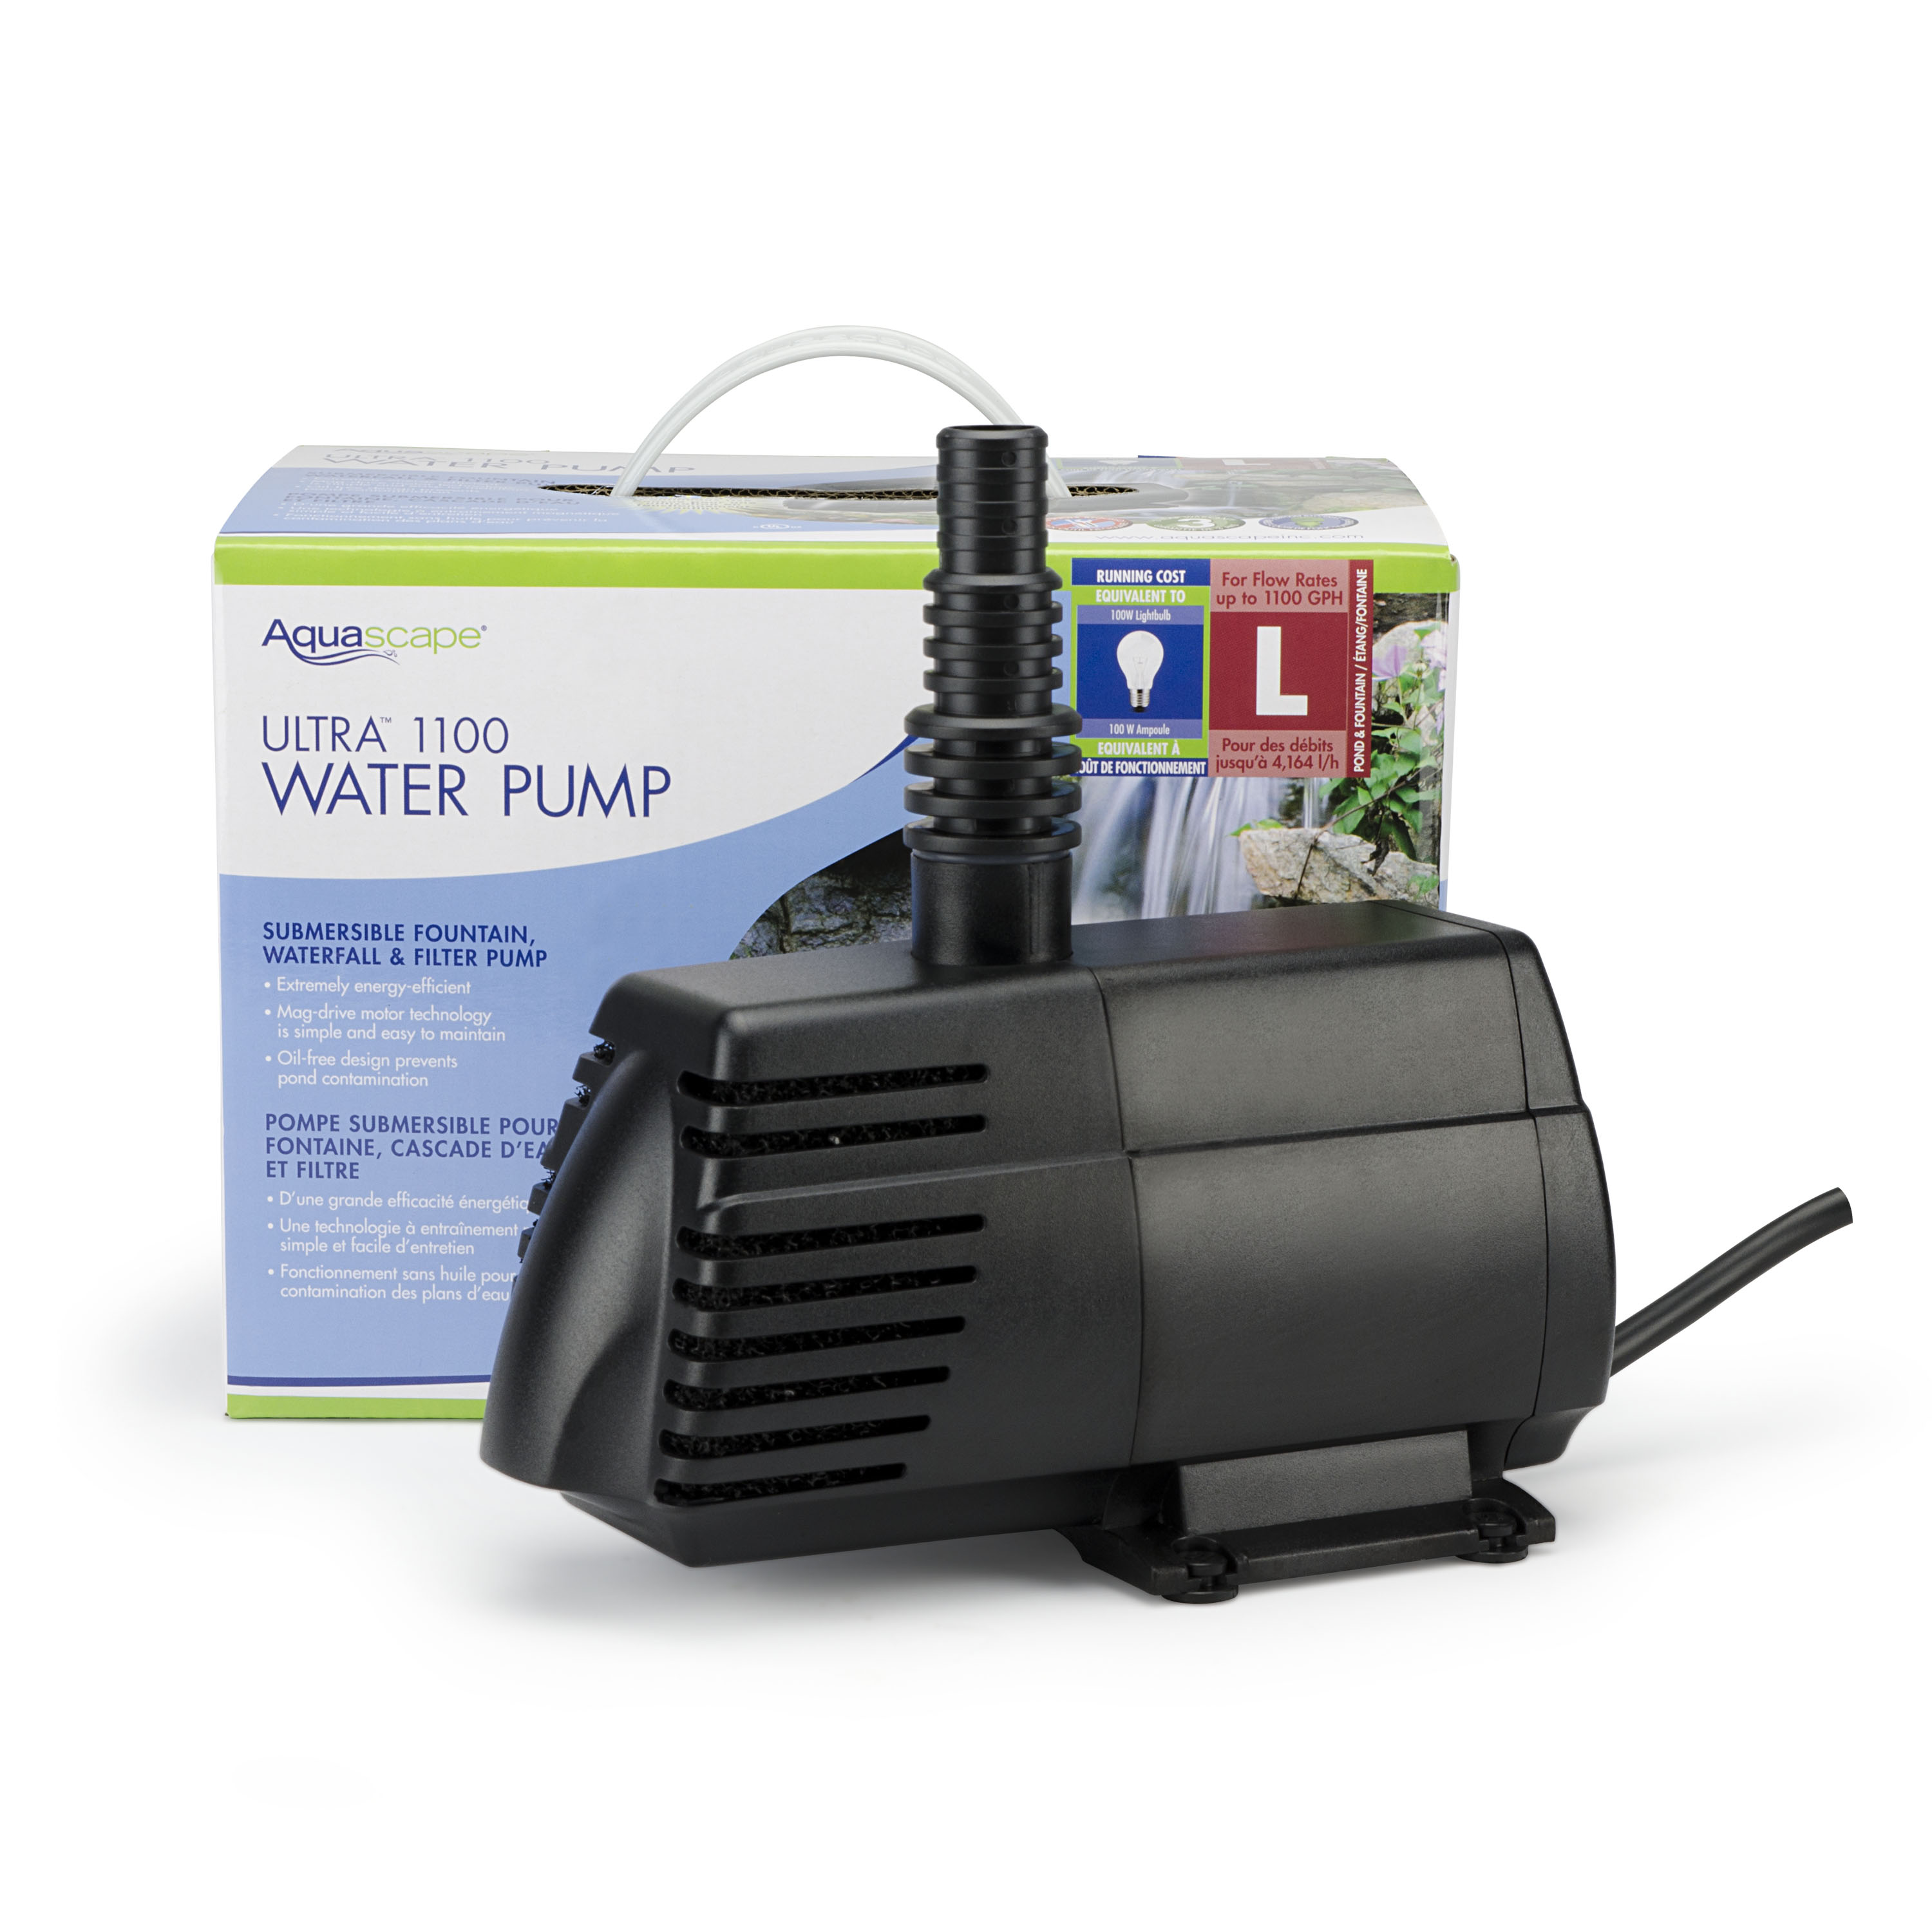 Ultra 1100 Water Pump